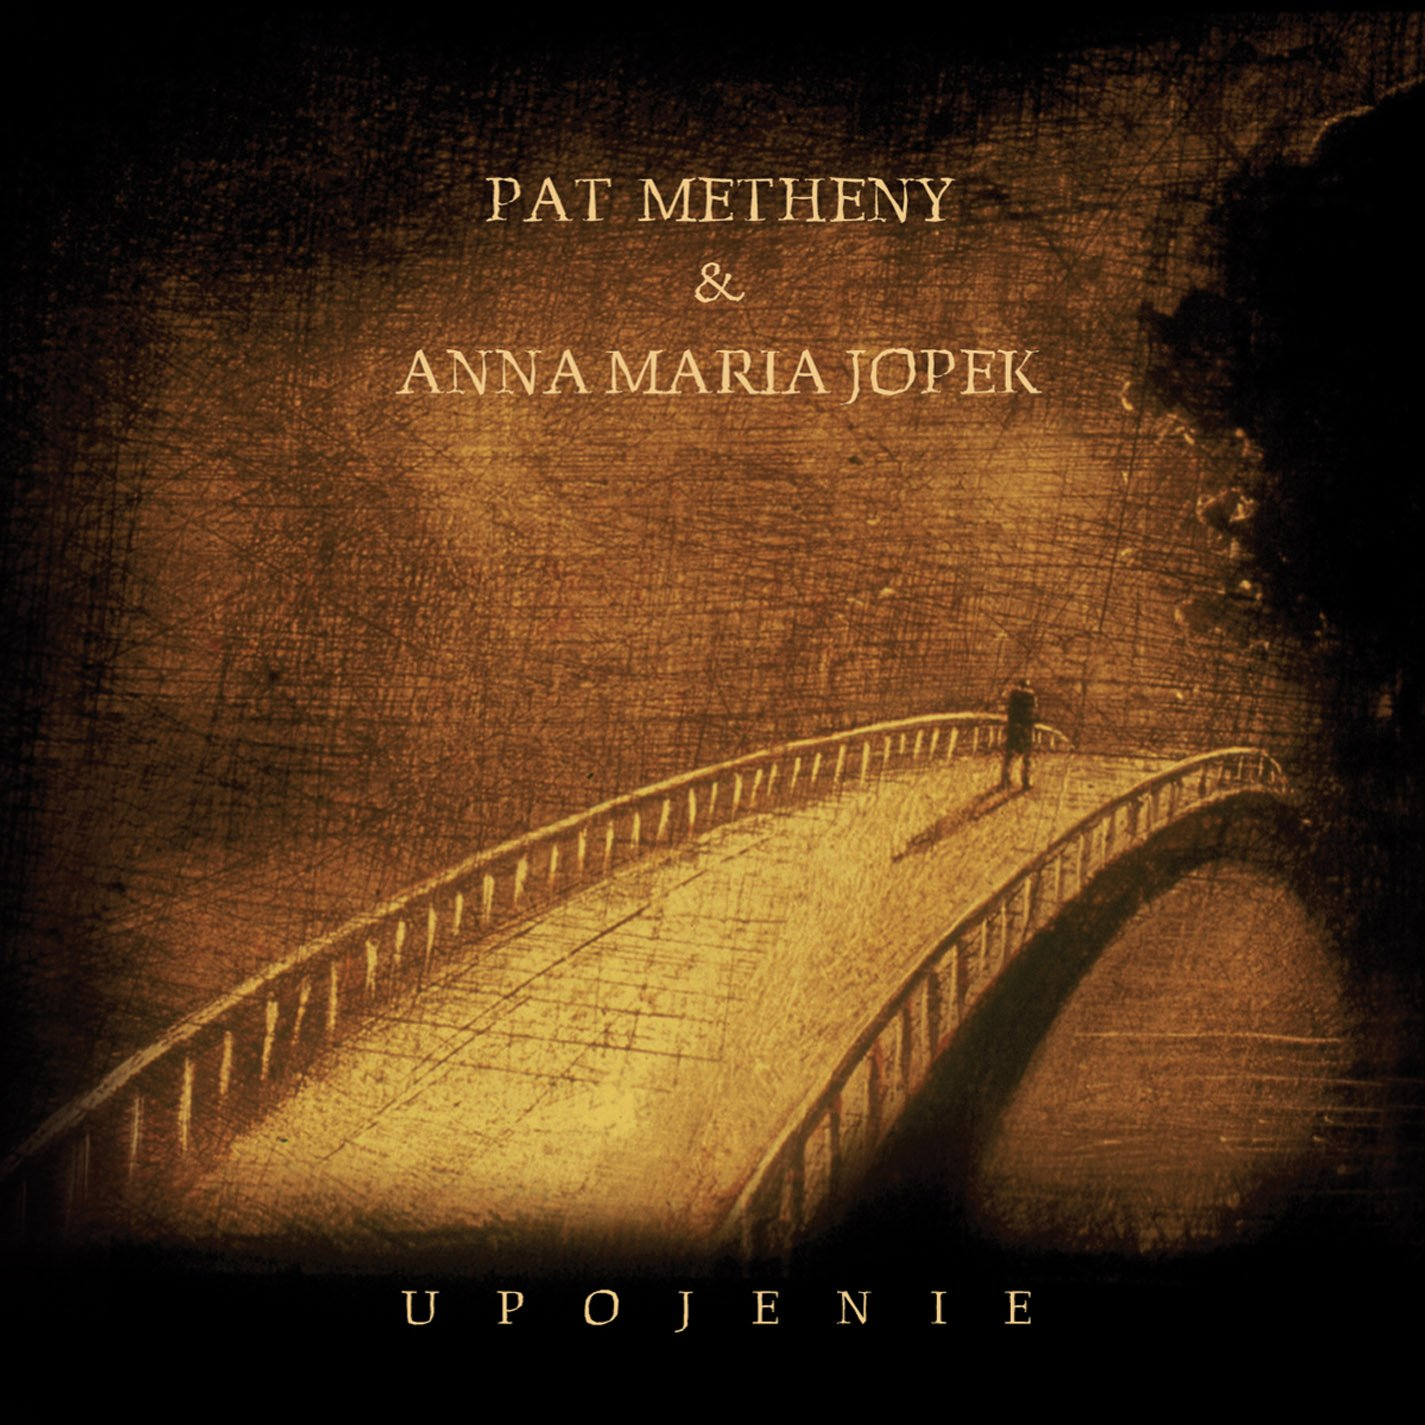 CD : Pat Metheny - Upojenie (CD)